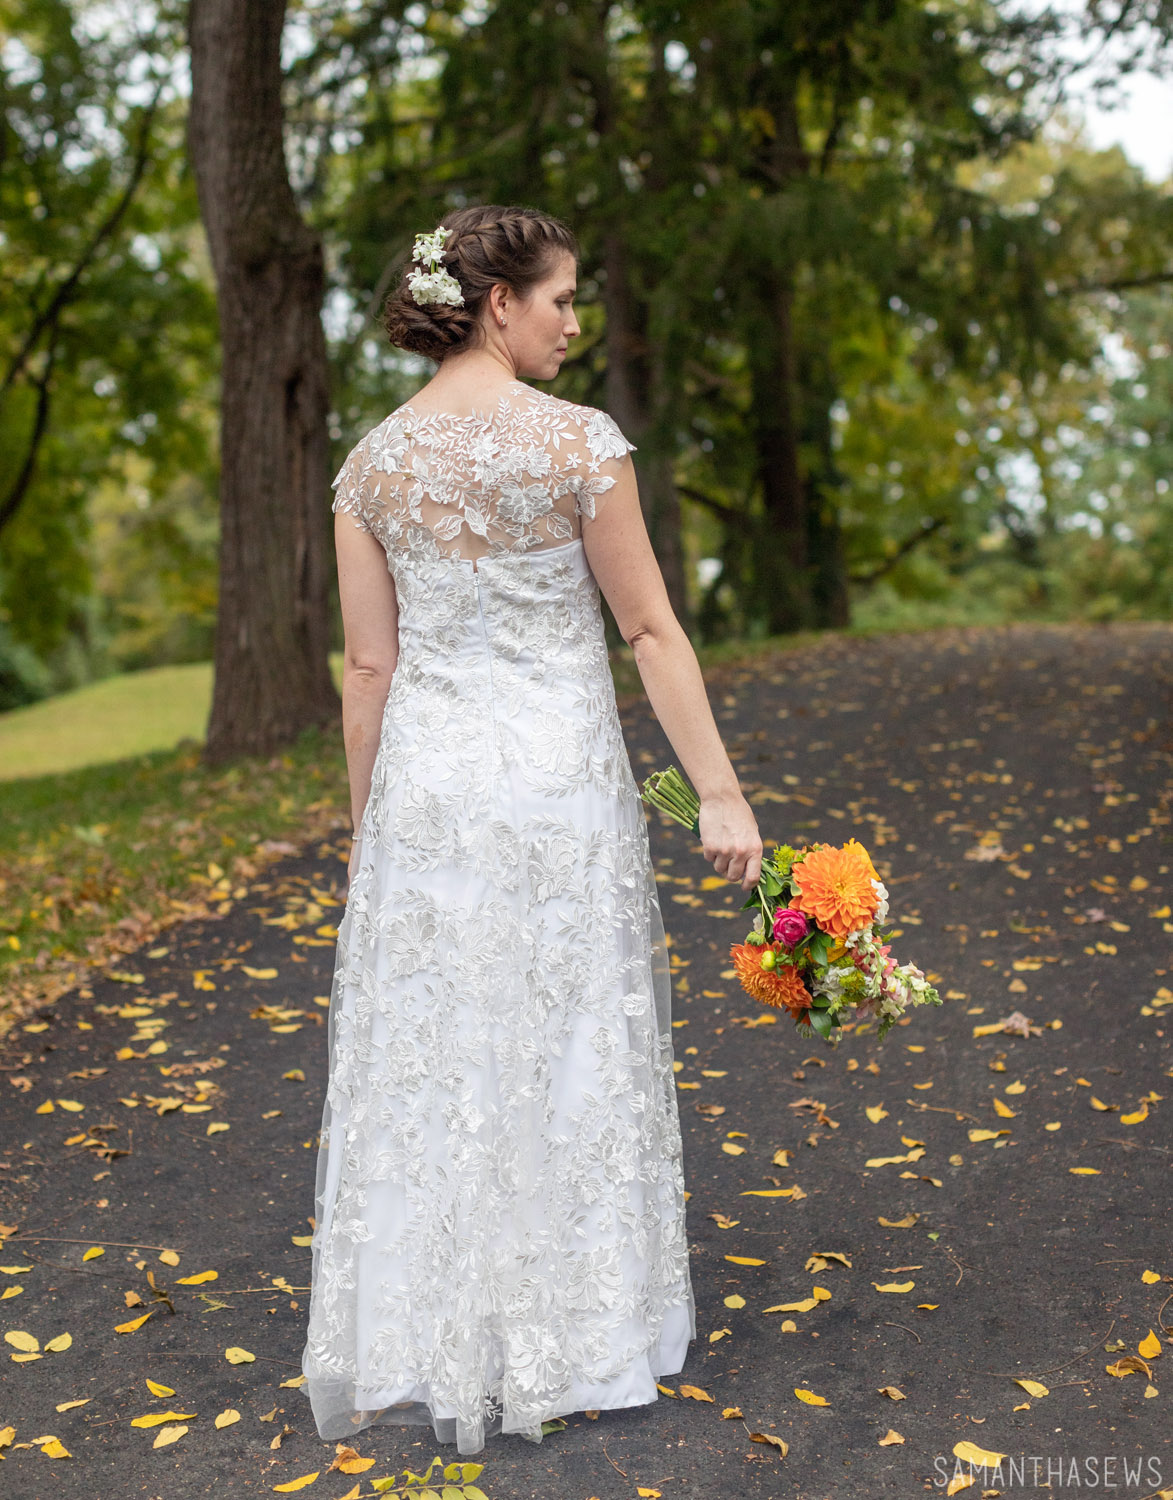 back of handmade wedding dress sewn with lace fabric, showing pearl buttons